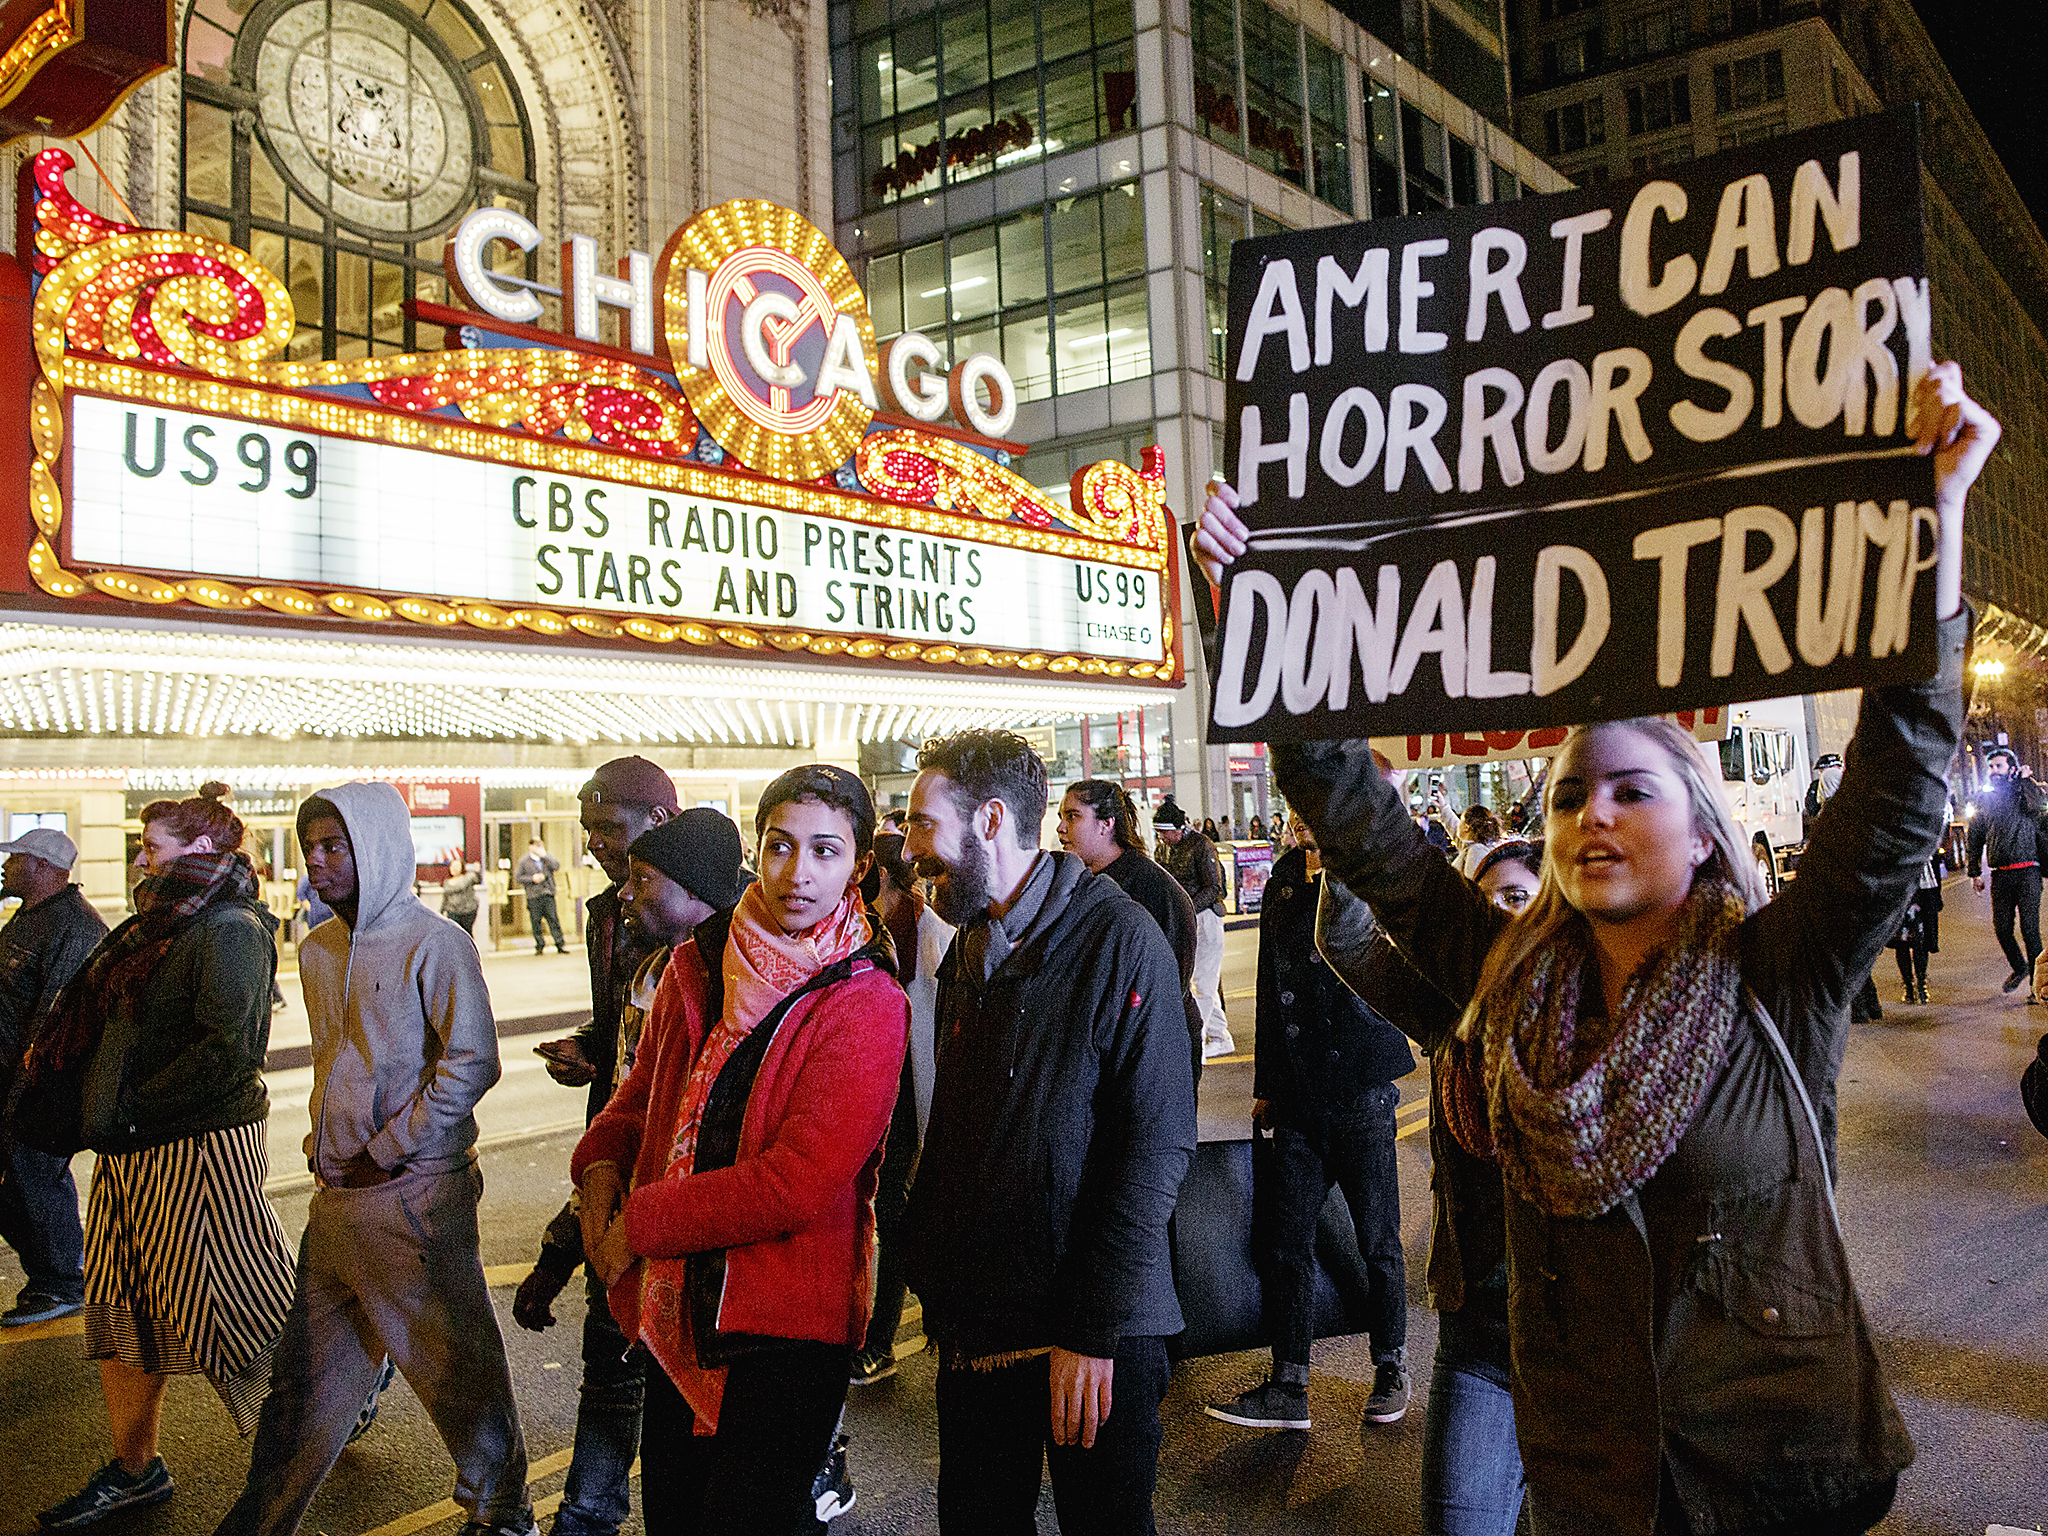 CHICAGO, IL - NOVEMBER 09: Demonstrators protest outside the Chicago Theatre November 9, 2016 in Chicago, Illinois. Thousands of people across the United States took to the streets in protest a day after Republican Donald Trump was elected president, defeating Democrat Hillary Clinton. (Photo by John Gress/Getty Images)